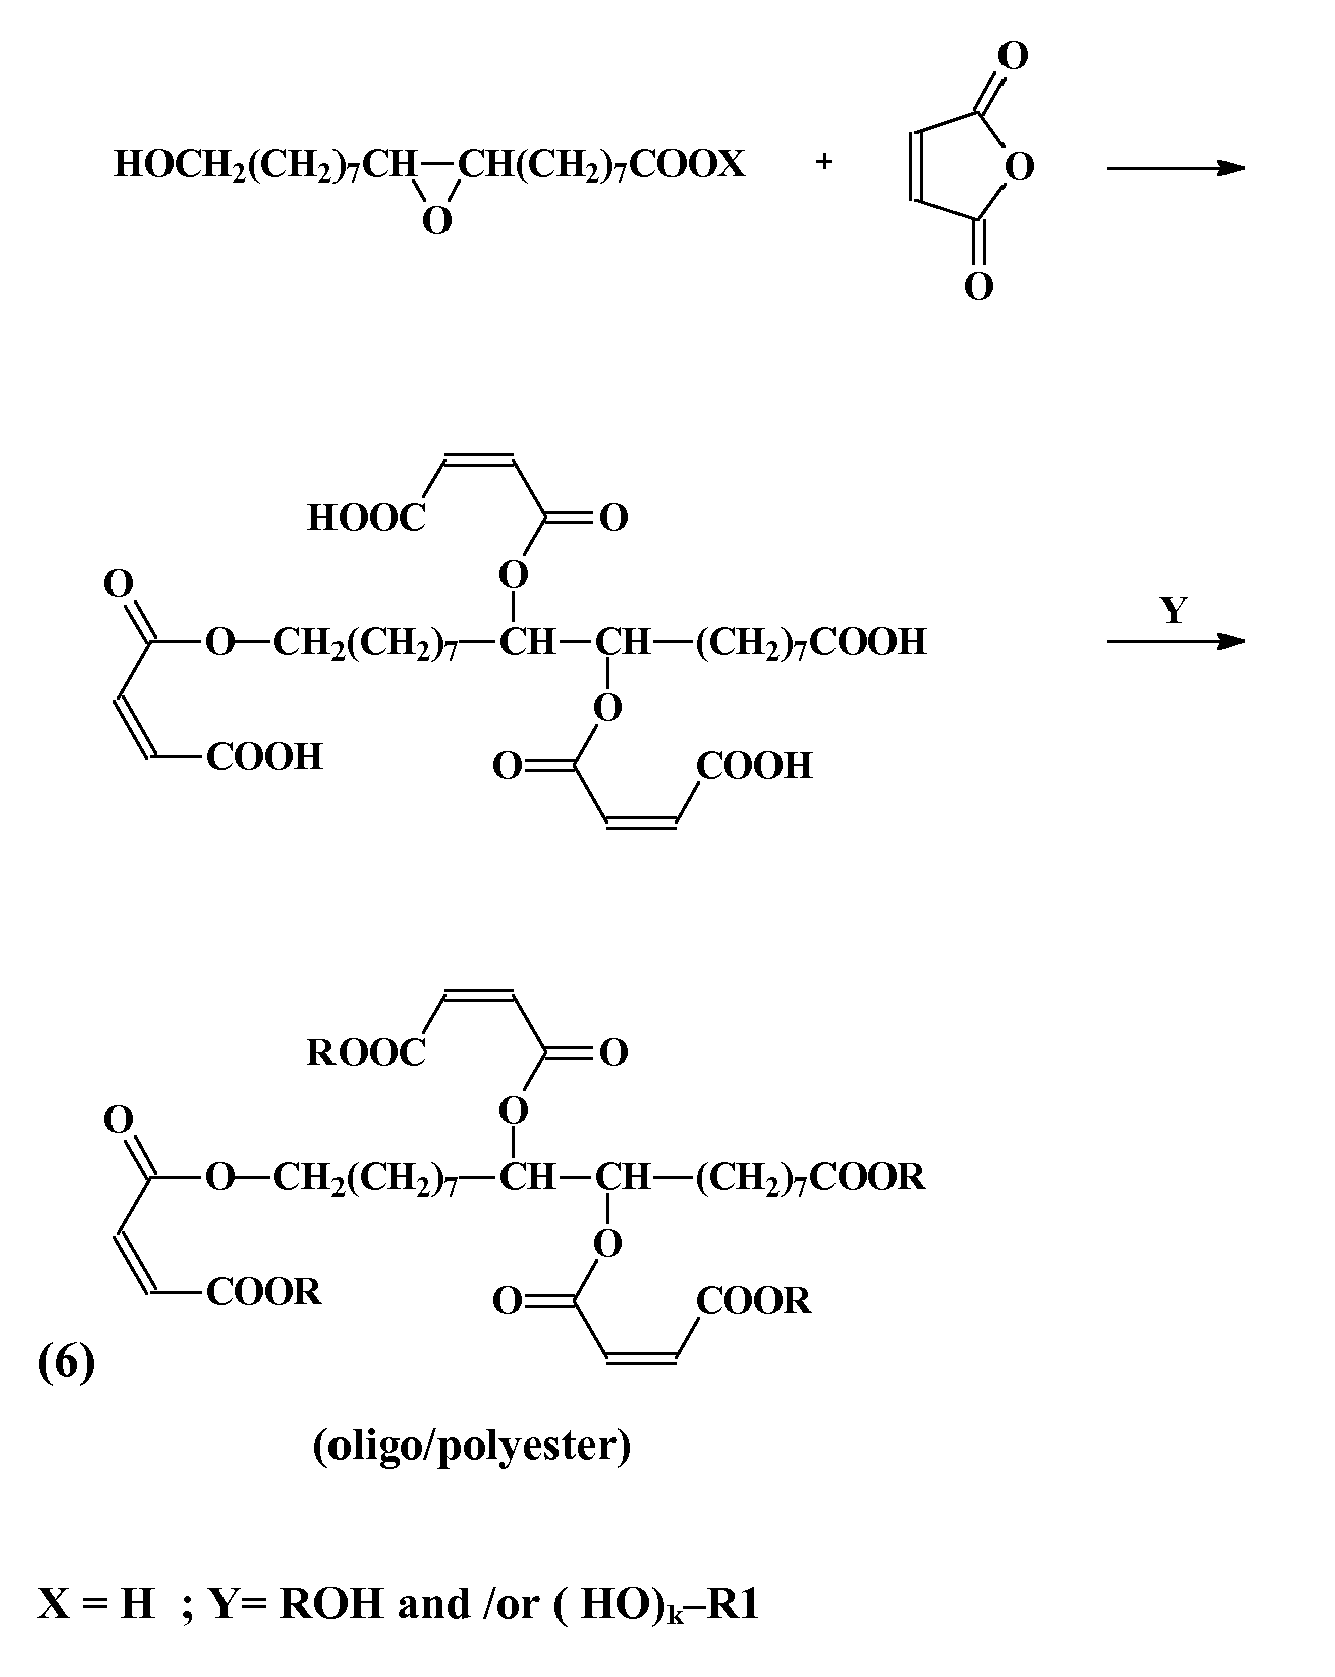 A Simplified Model Example Of The Embodiment C Invention Is Shown By Reaction 6 Below